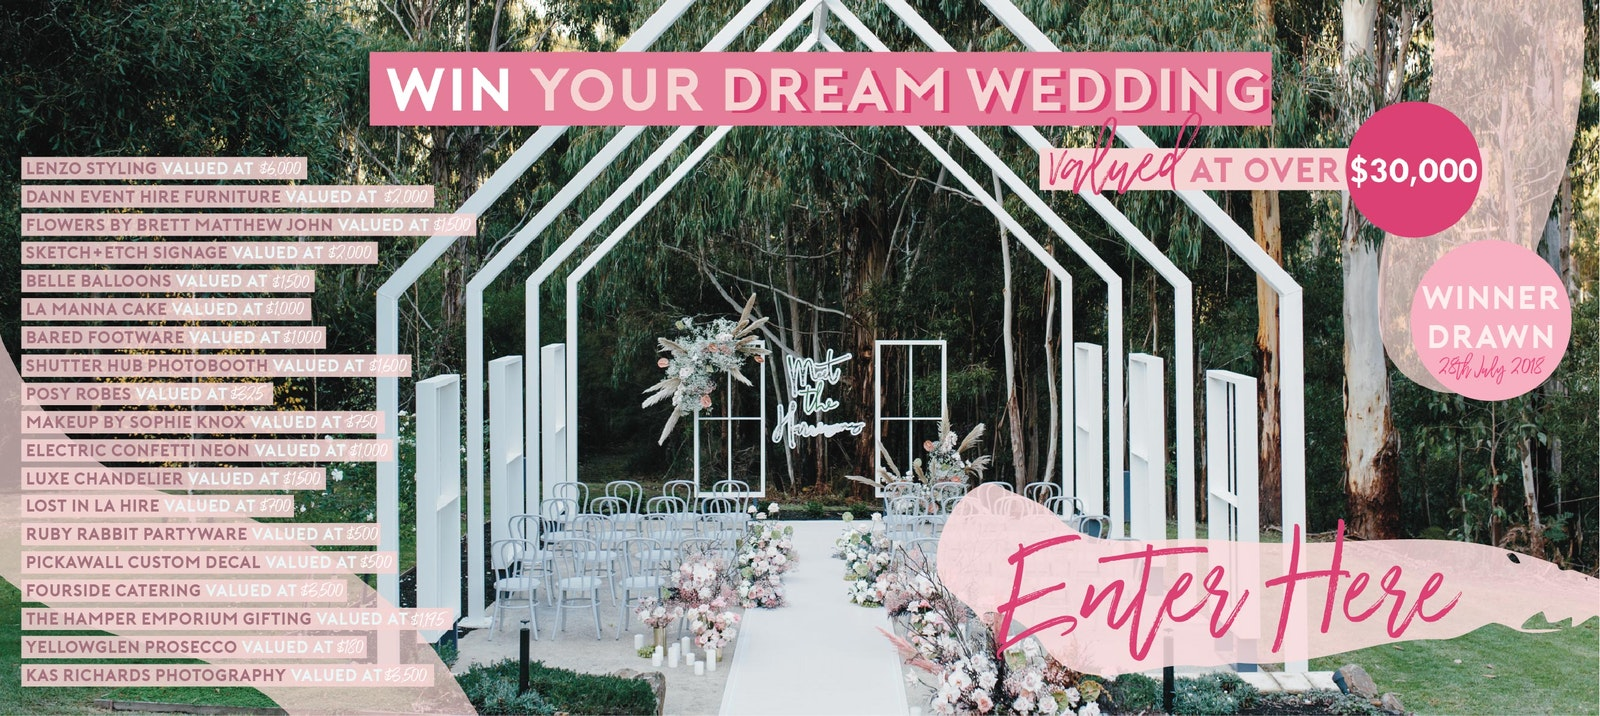 Time to win your DREAM WEDDING with LENZO and other AMAZING suppliers